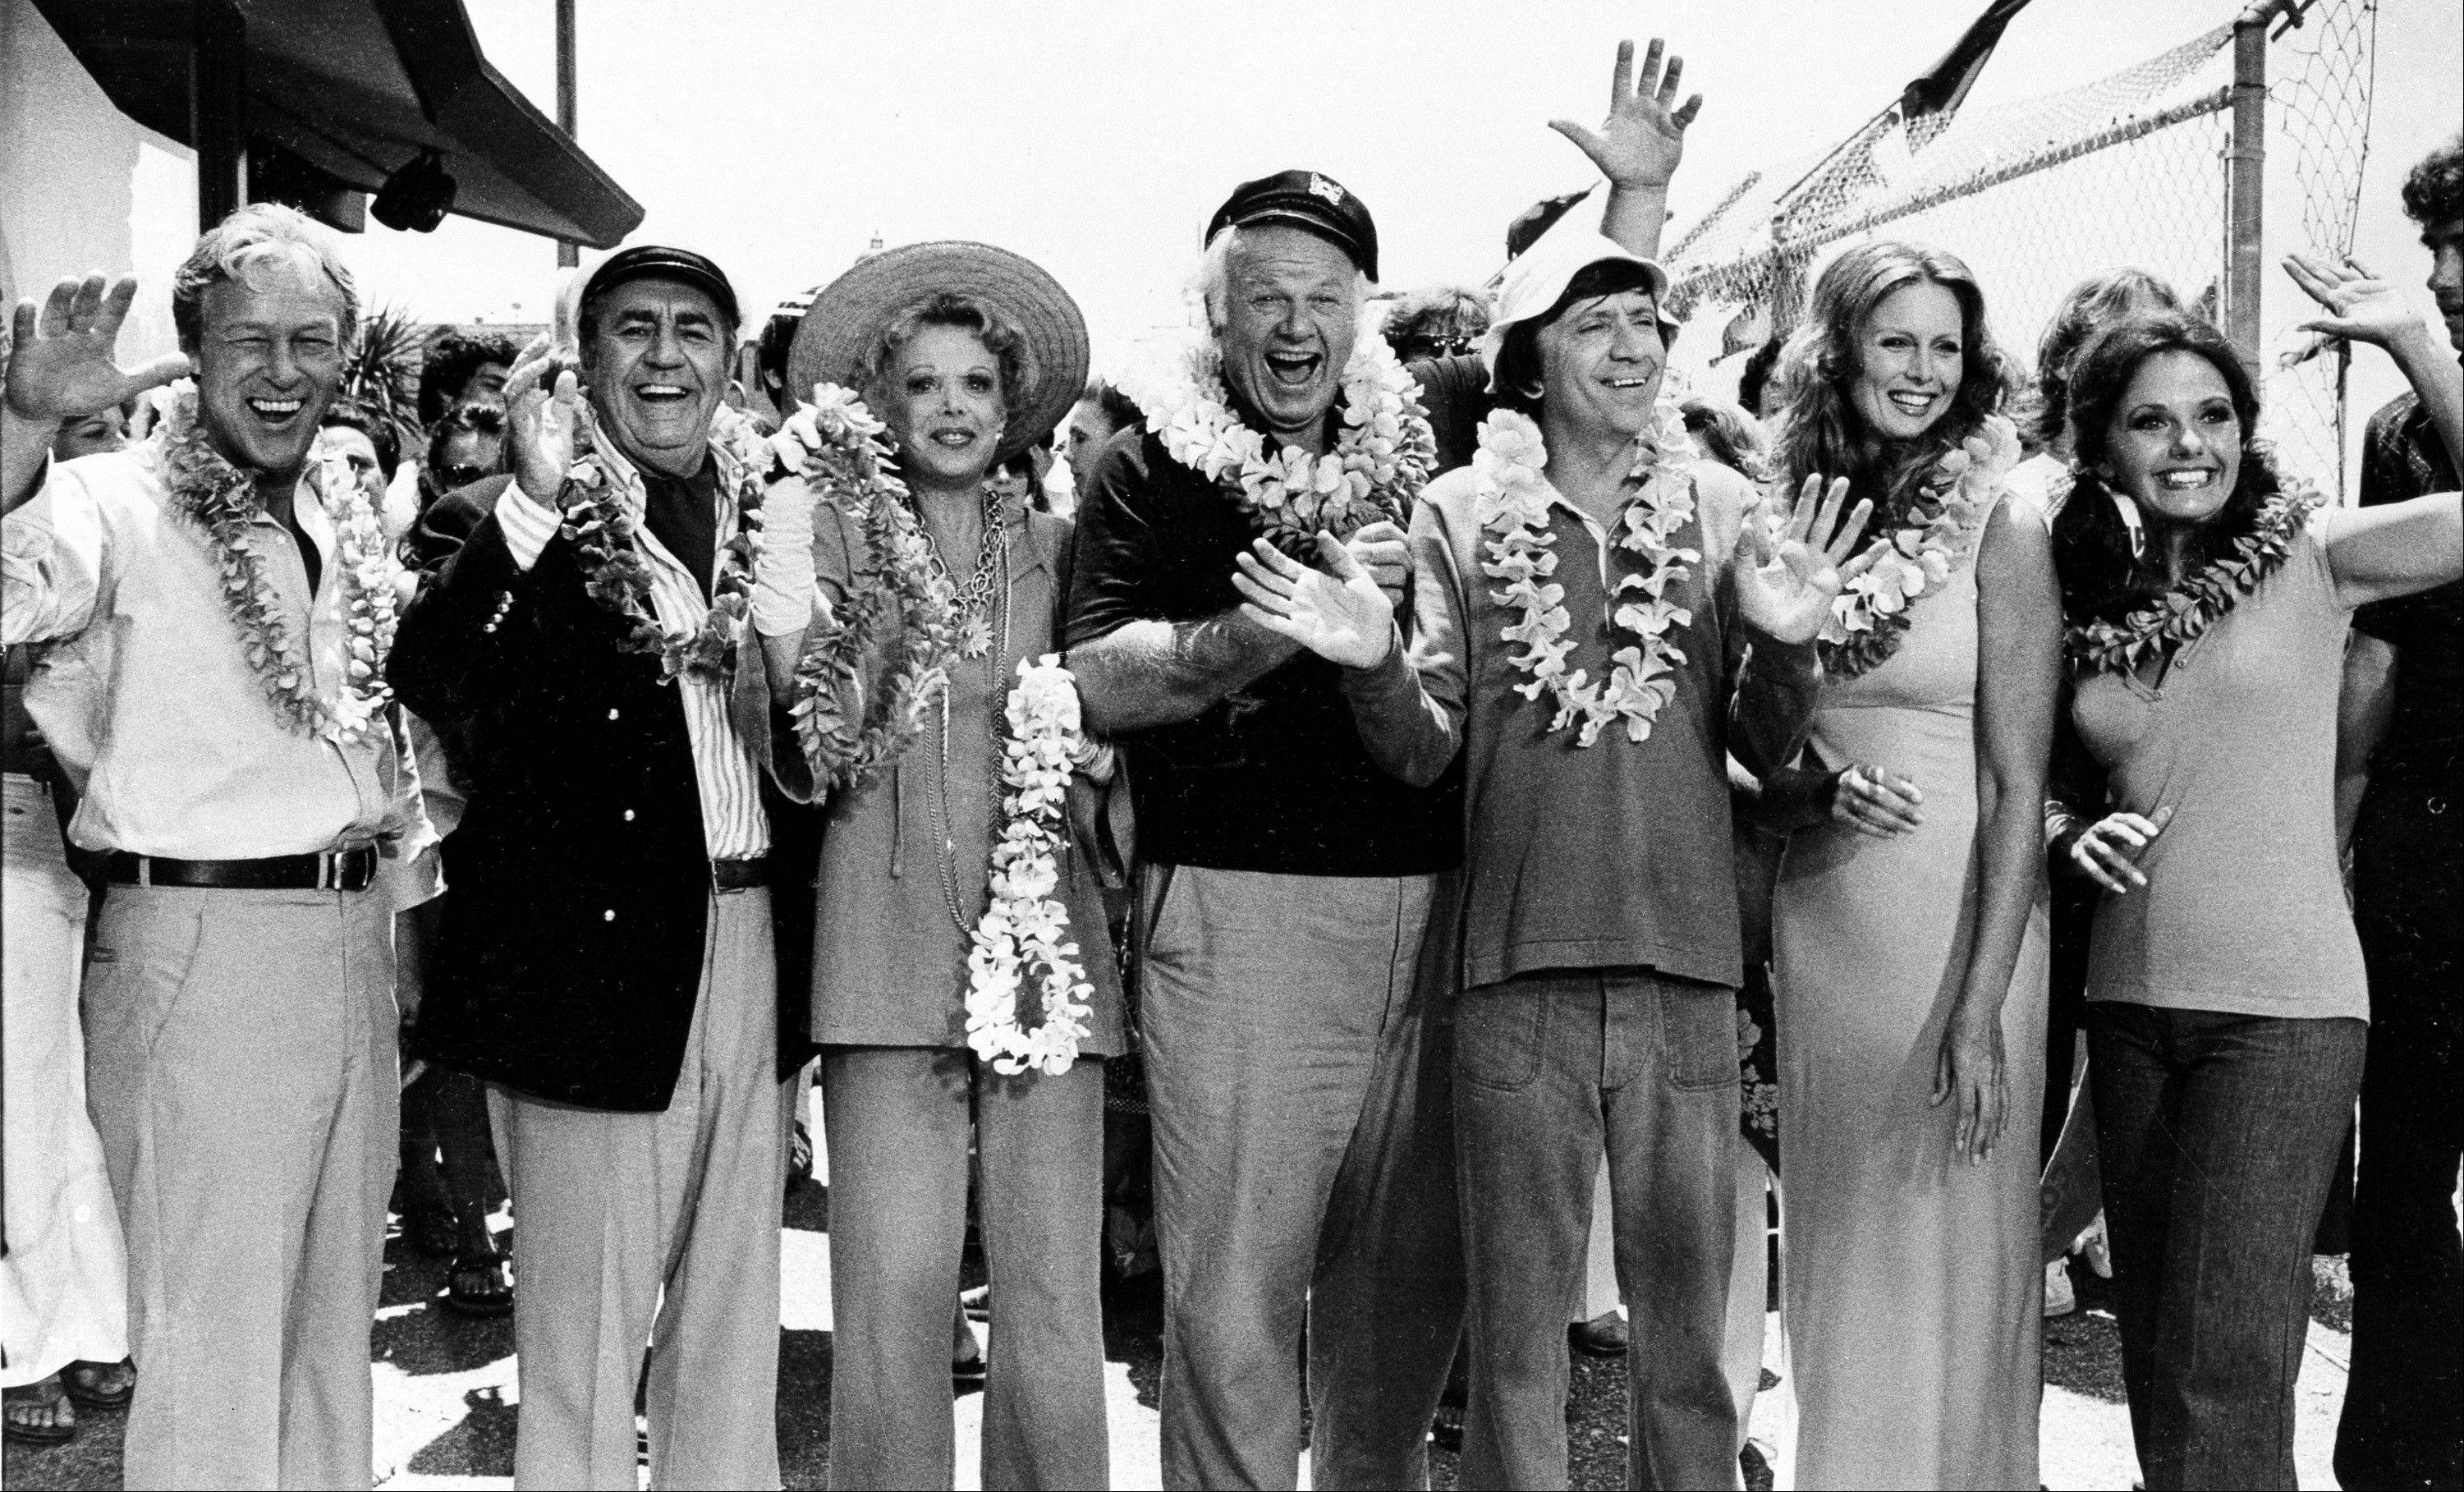 The cast of �Gilligan�s Island,� from left, Russell Johnson, as the professor; Jim Backus as Thurston Howell III; Natalie Schafer, as Mrs. Howell III; Alan Hale Jr., as the skipper; Bob Denver, as Gilligan; Judith Baldwin replacing original cast member Tina Louise, as Ginger, and Dawn Wells, as Mary Ann, posing during filming of a two-hour reunion show, �The Return from Gilligan�s Island,� in Los Angeles.